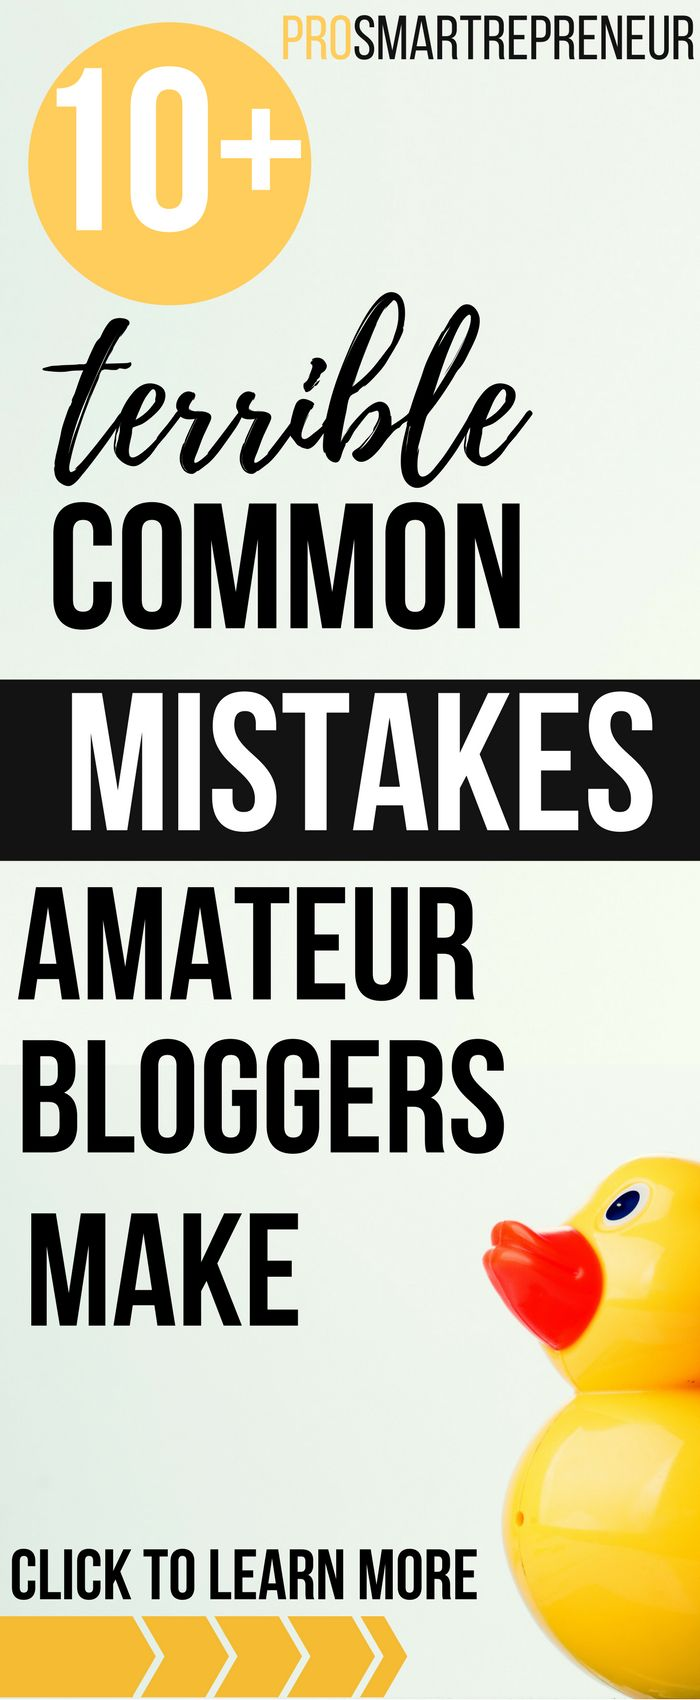 Avoiding some of the TERRIBLE common blogging mistakes (which is discussed in details here) may push you EONS ahead of your blogging journey skipping all the frustrating part.